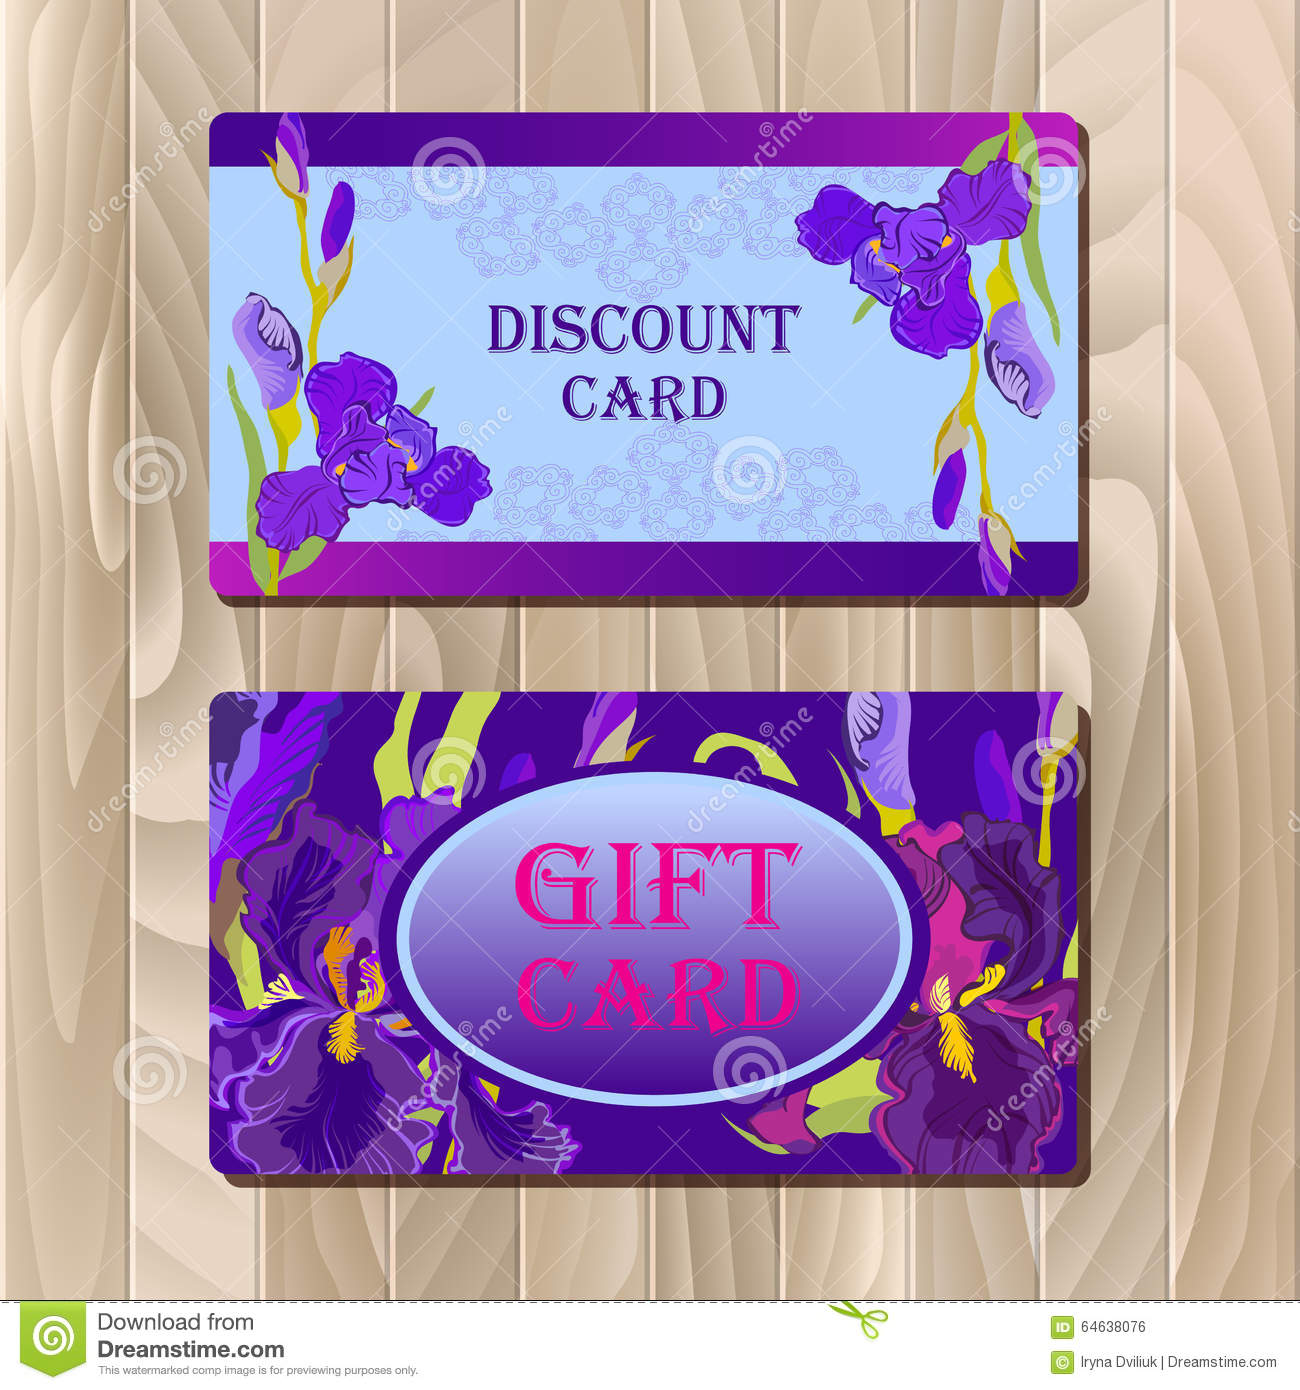 Design of discount card - Discount Card Template With Purple Iris Flower Design Royalty Free Stock Image